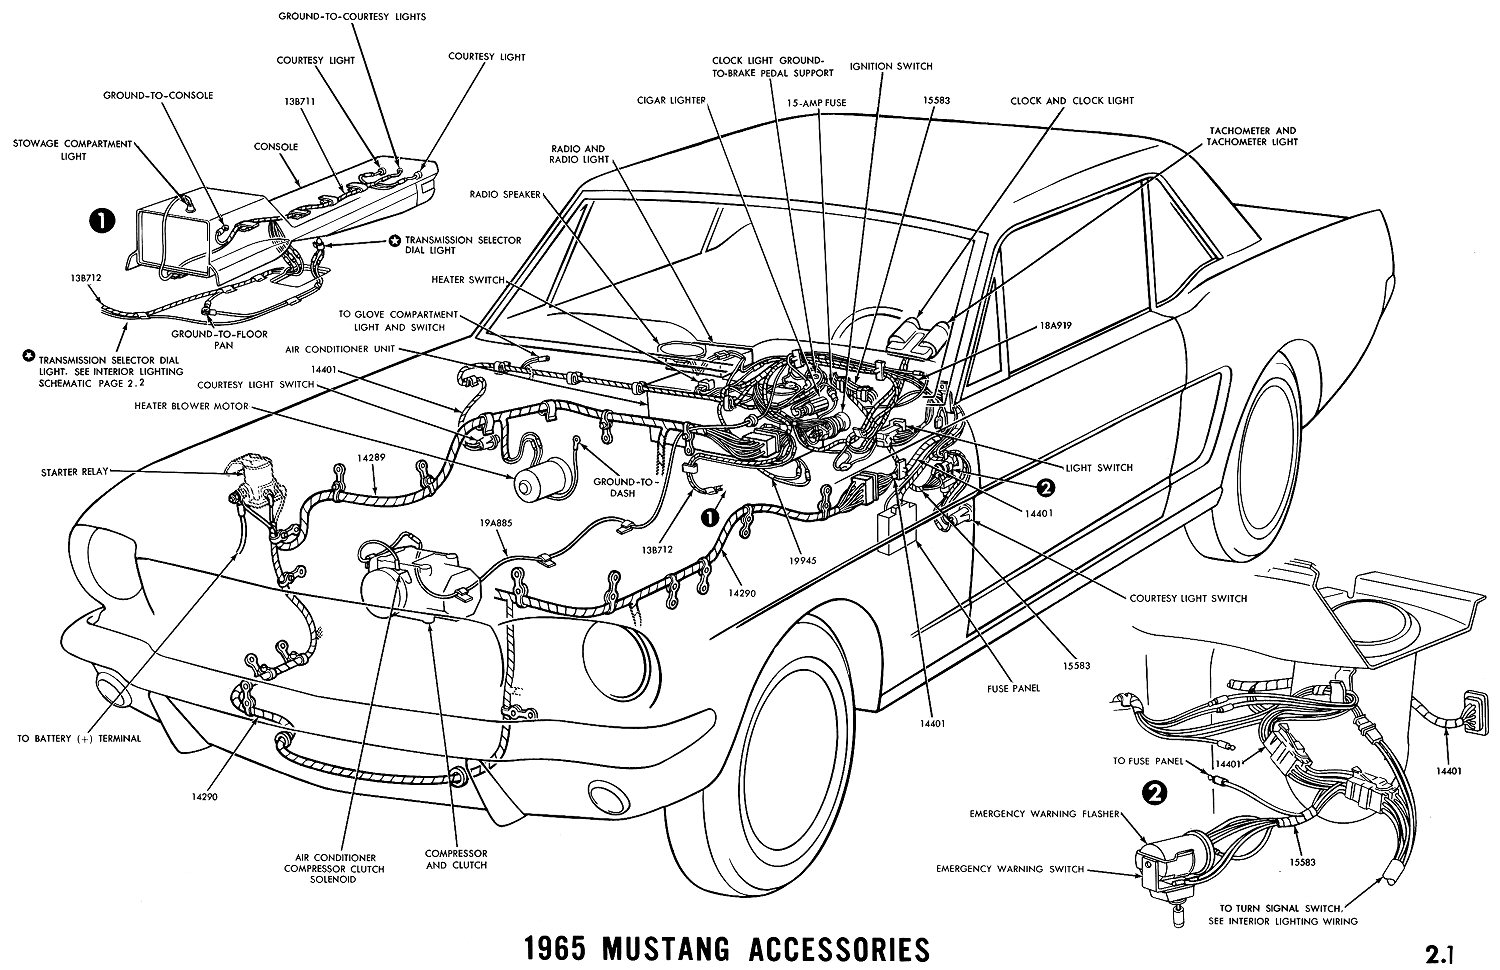 hight resolution of 1965 mustang wiring diagrams average joe restoration 66 mustang horn wiring 65 mustang fuse box diagram